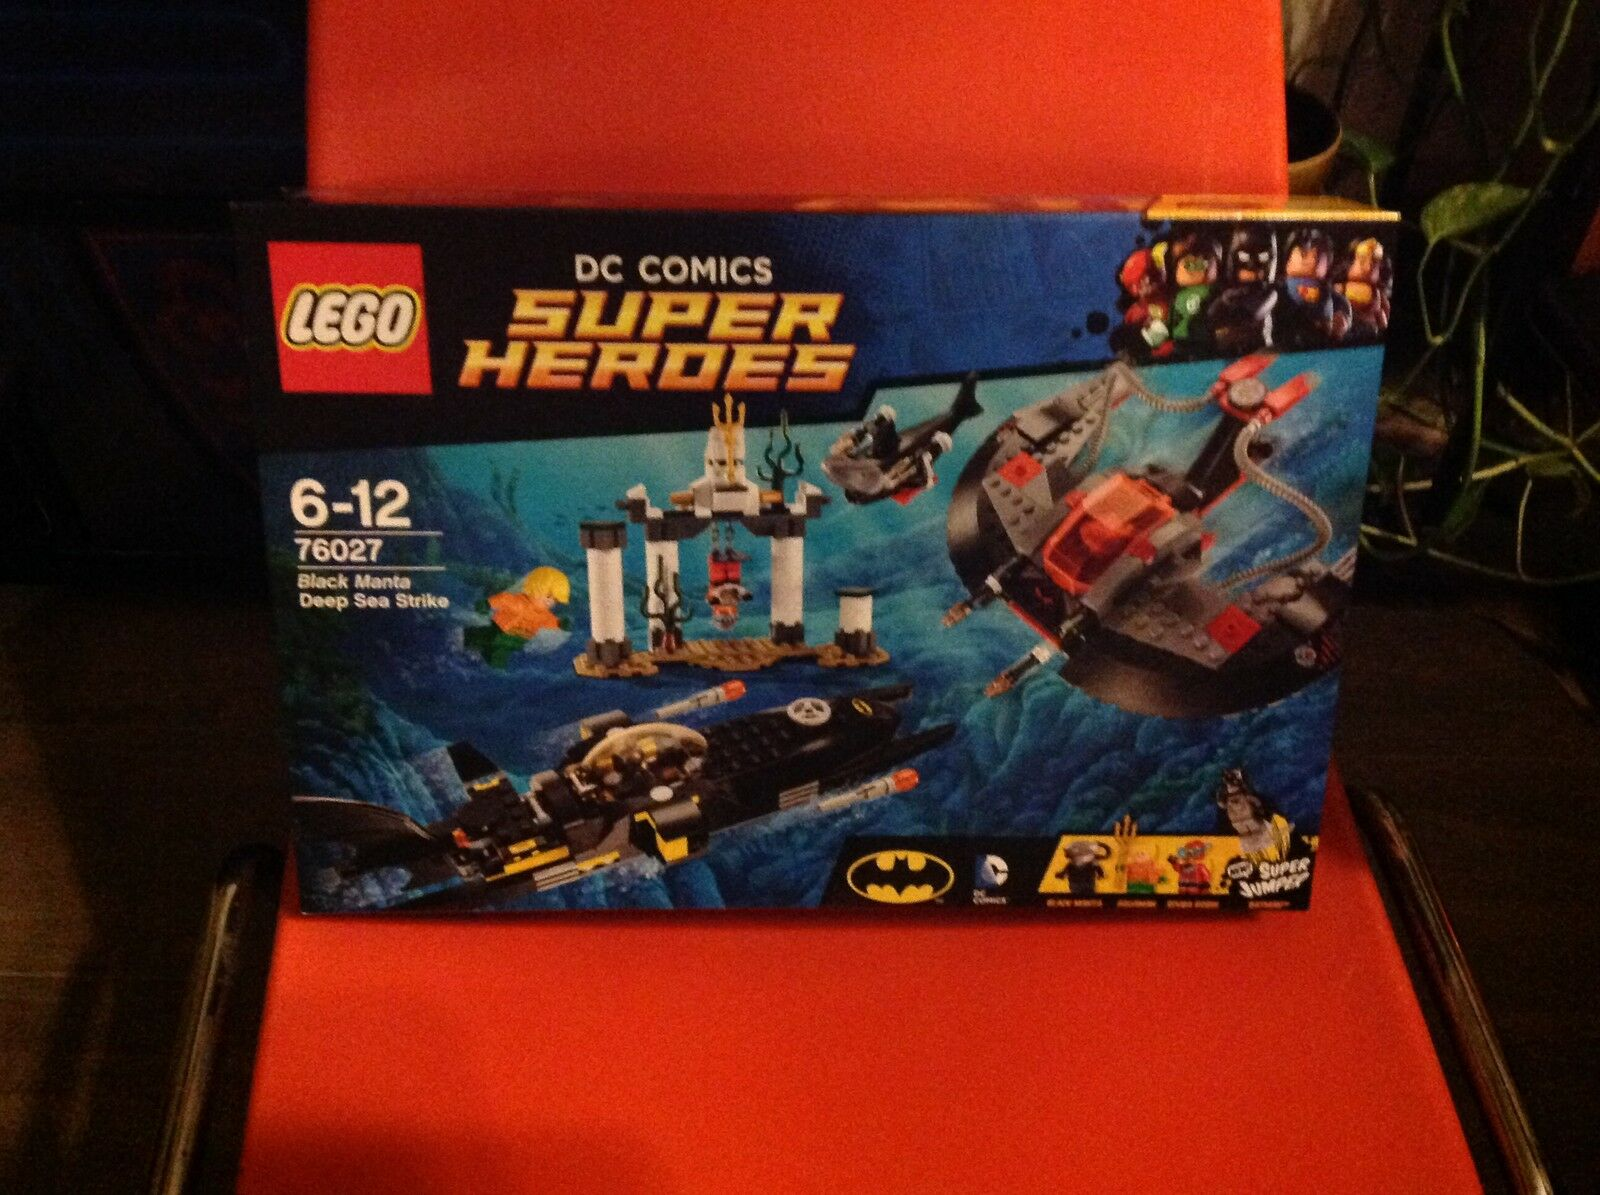 Lego Super Heroes 76027 schwarz Manta Deep Sea Strike